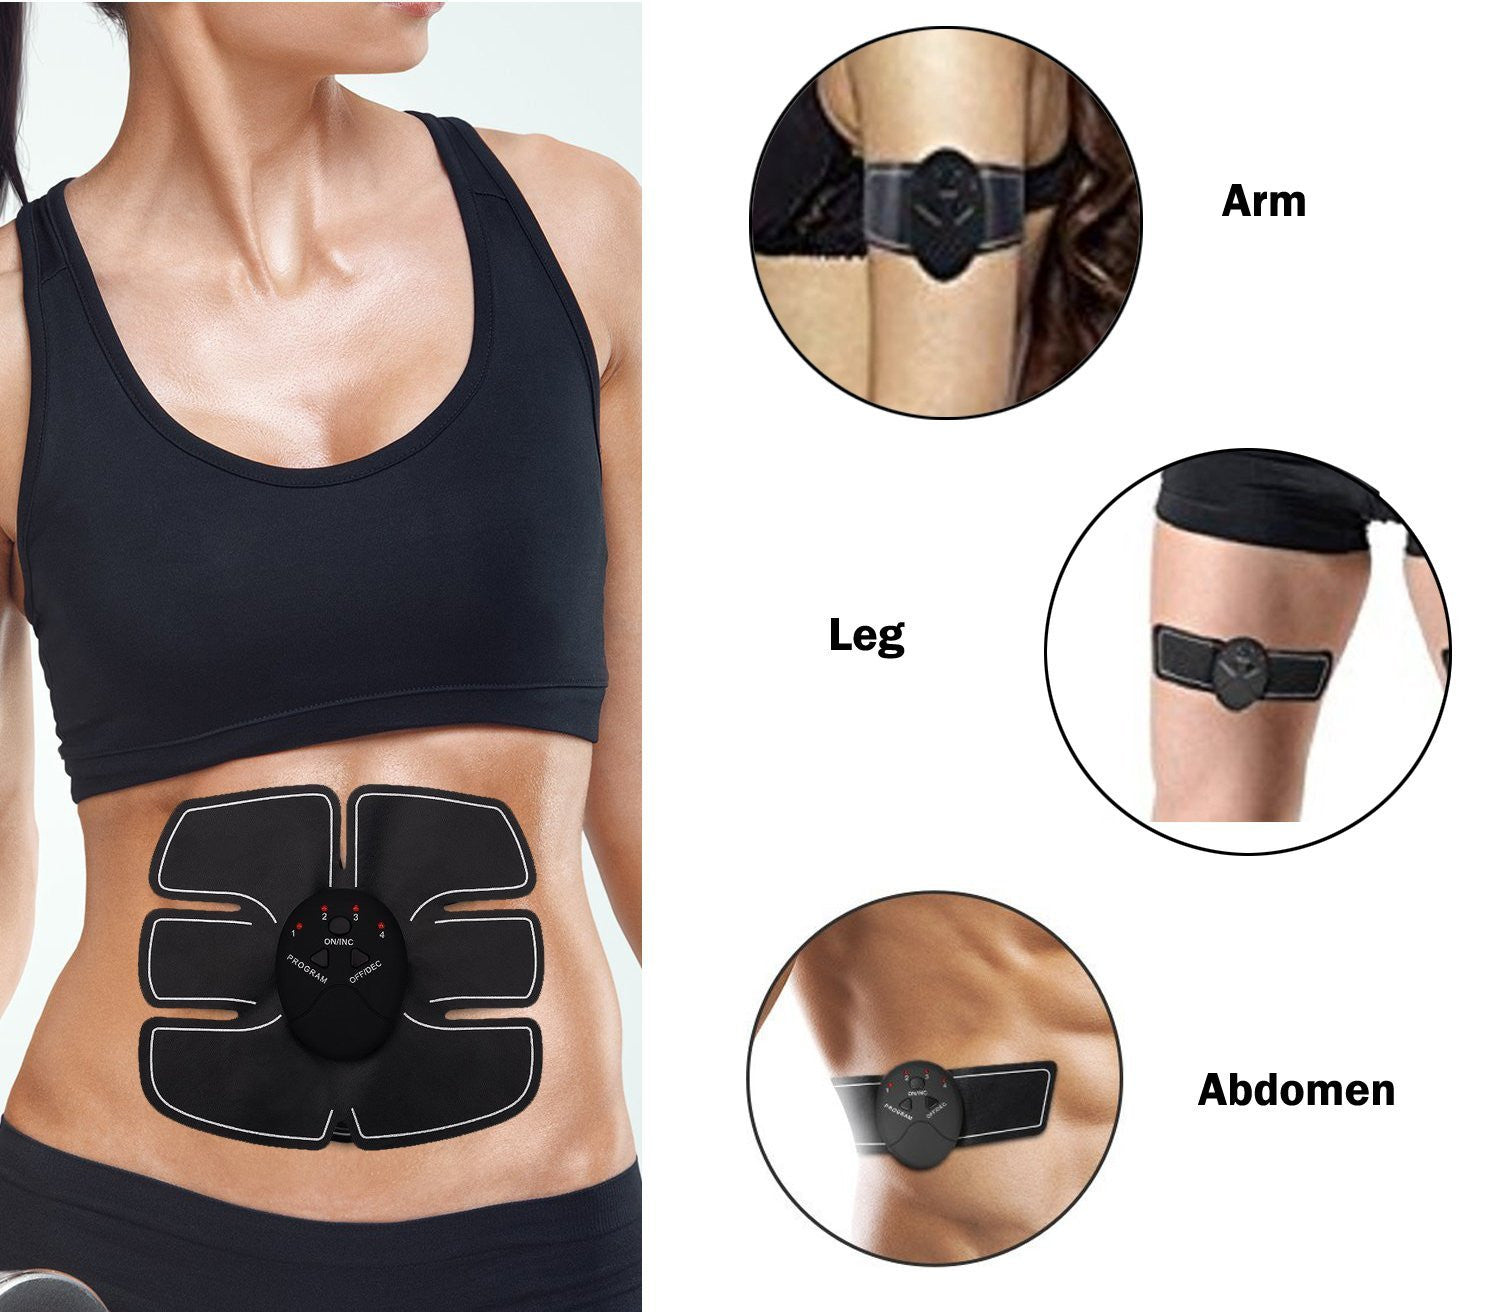 The Ultimate Ab Stimulator